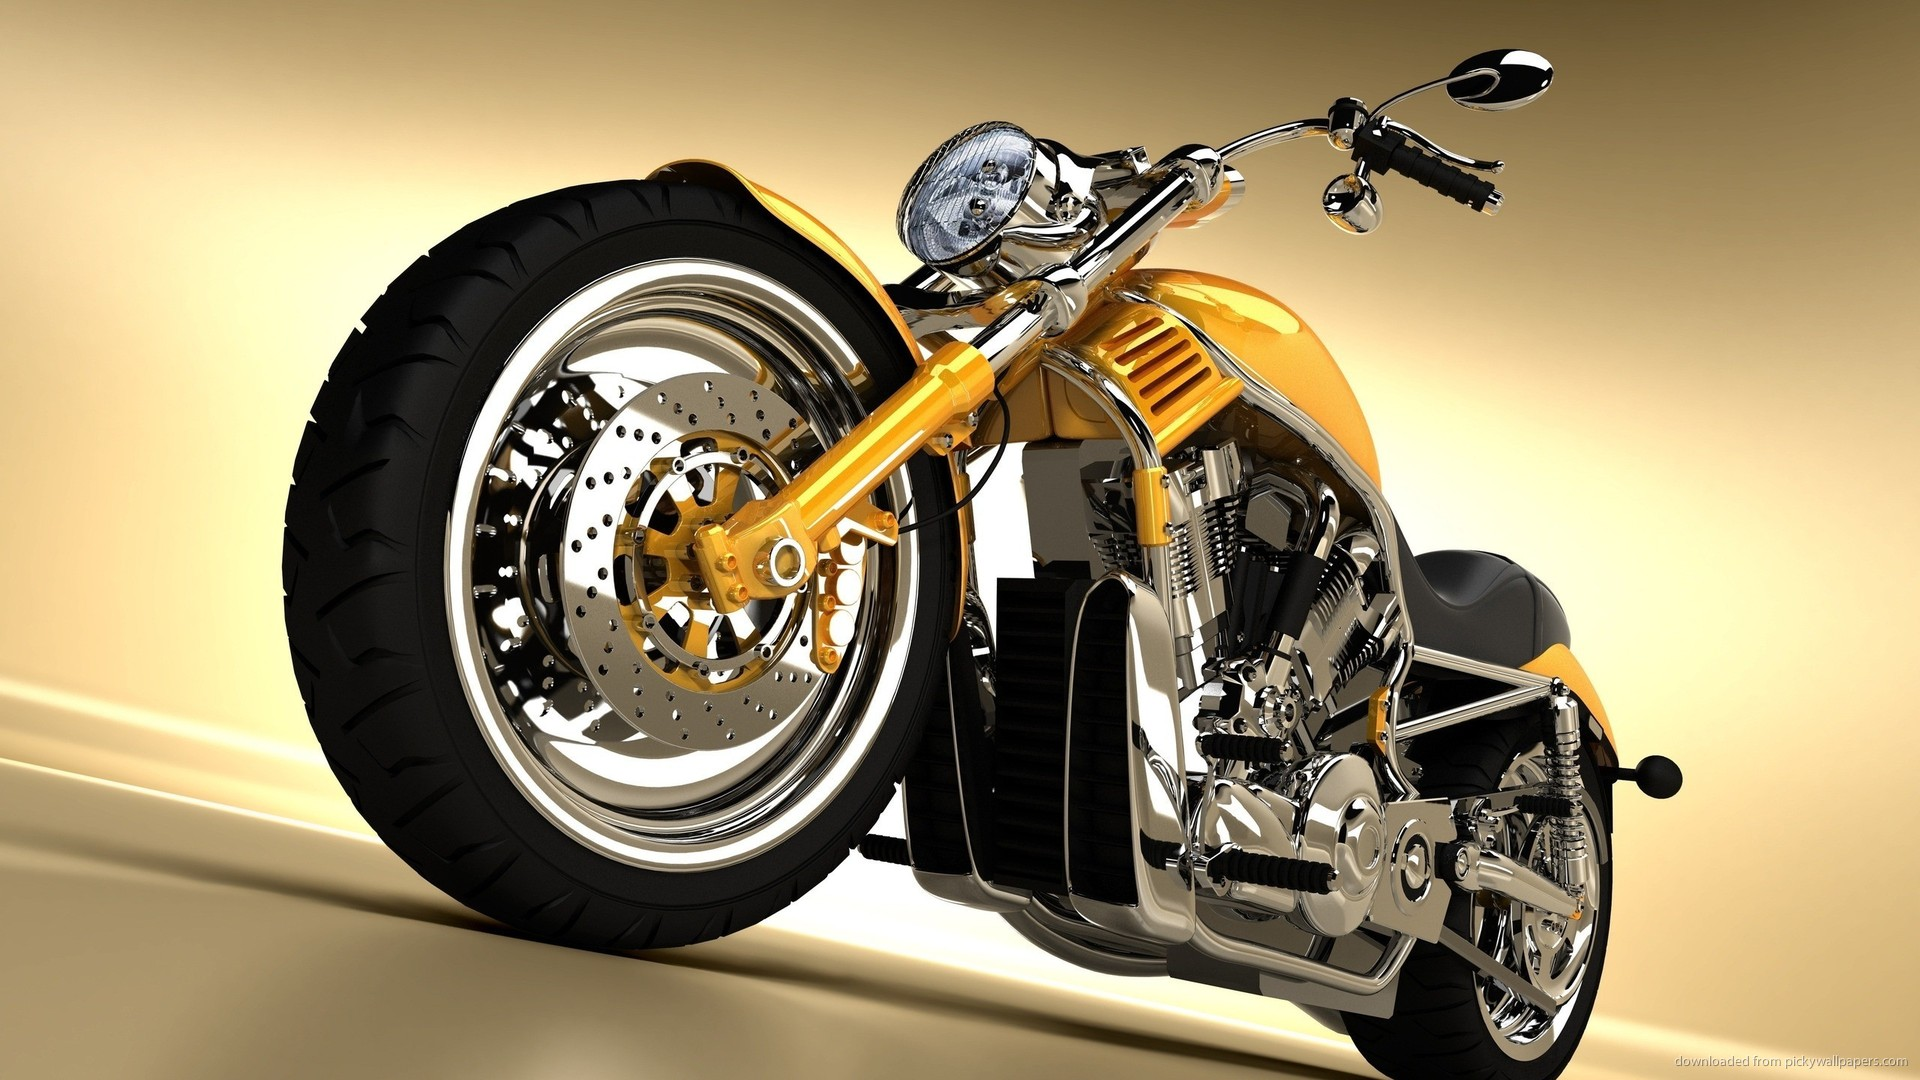 cars wallpapers motorcycles harley - photo #25